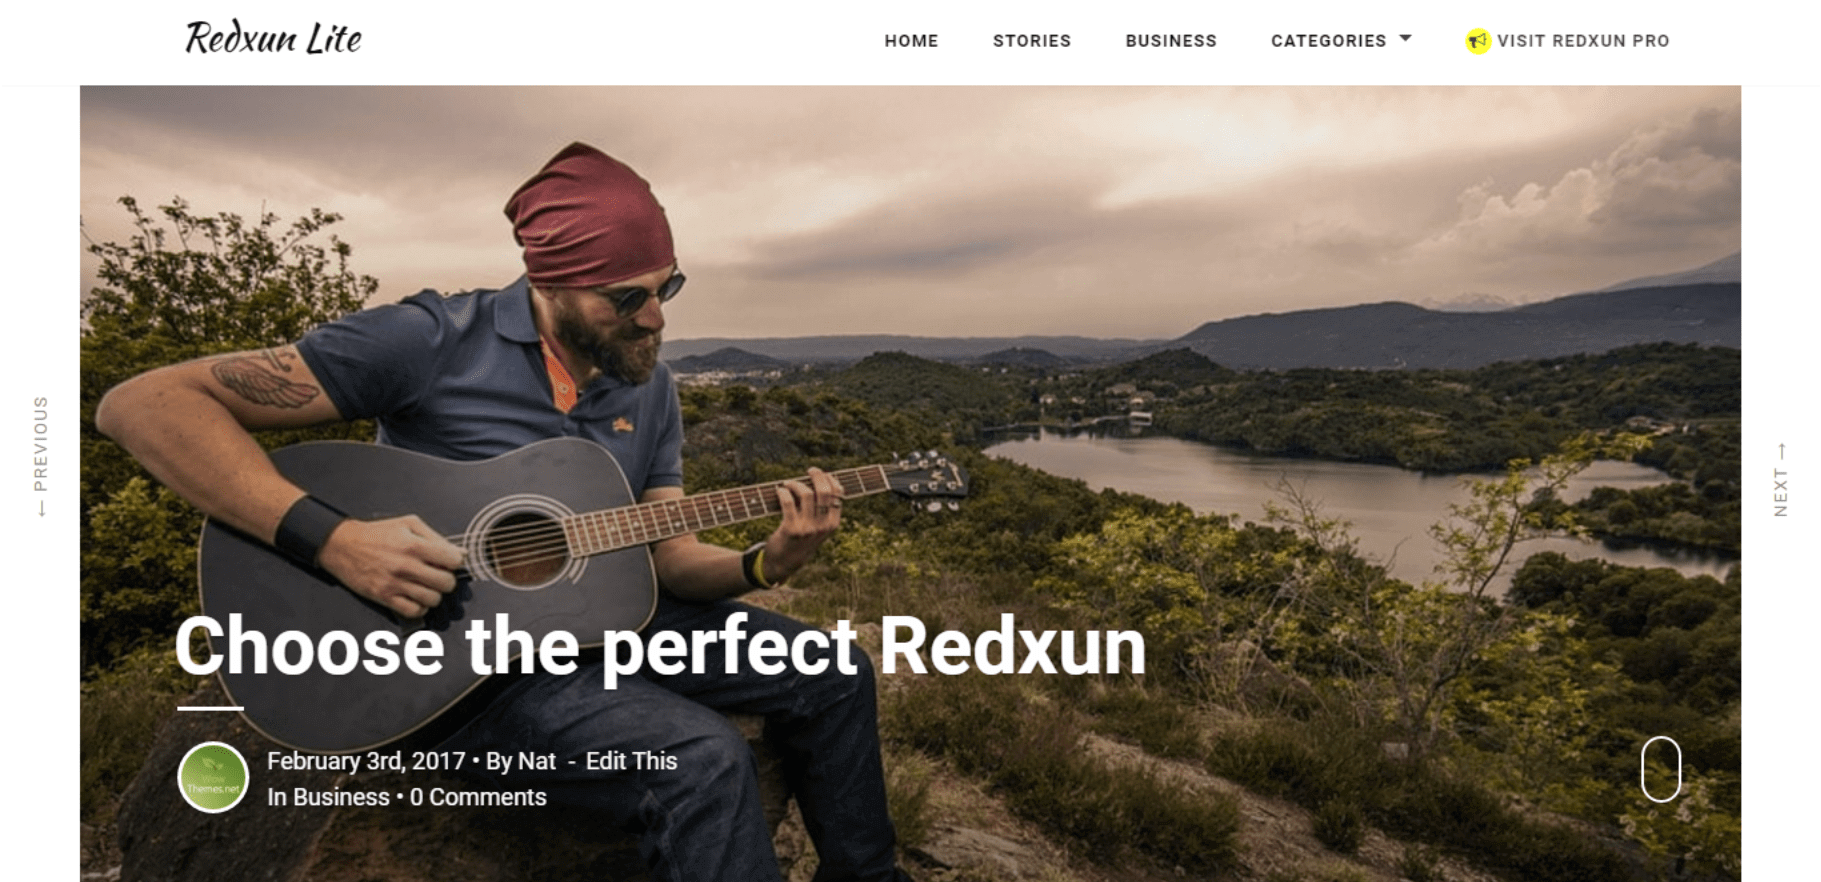 RedxunLite - Free Blogging WordPress Theme